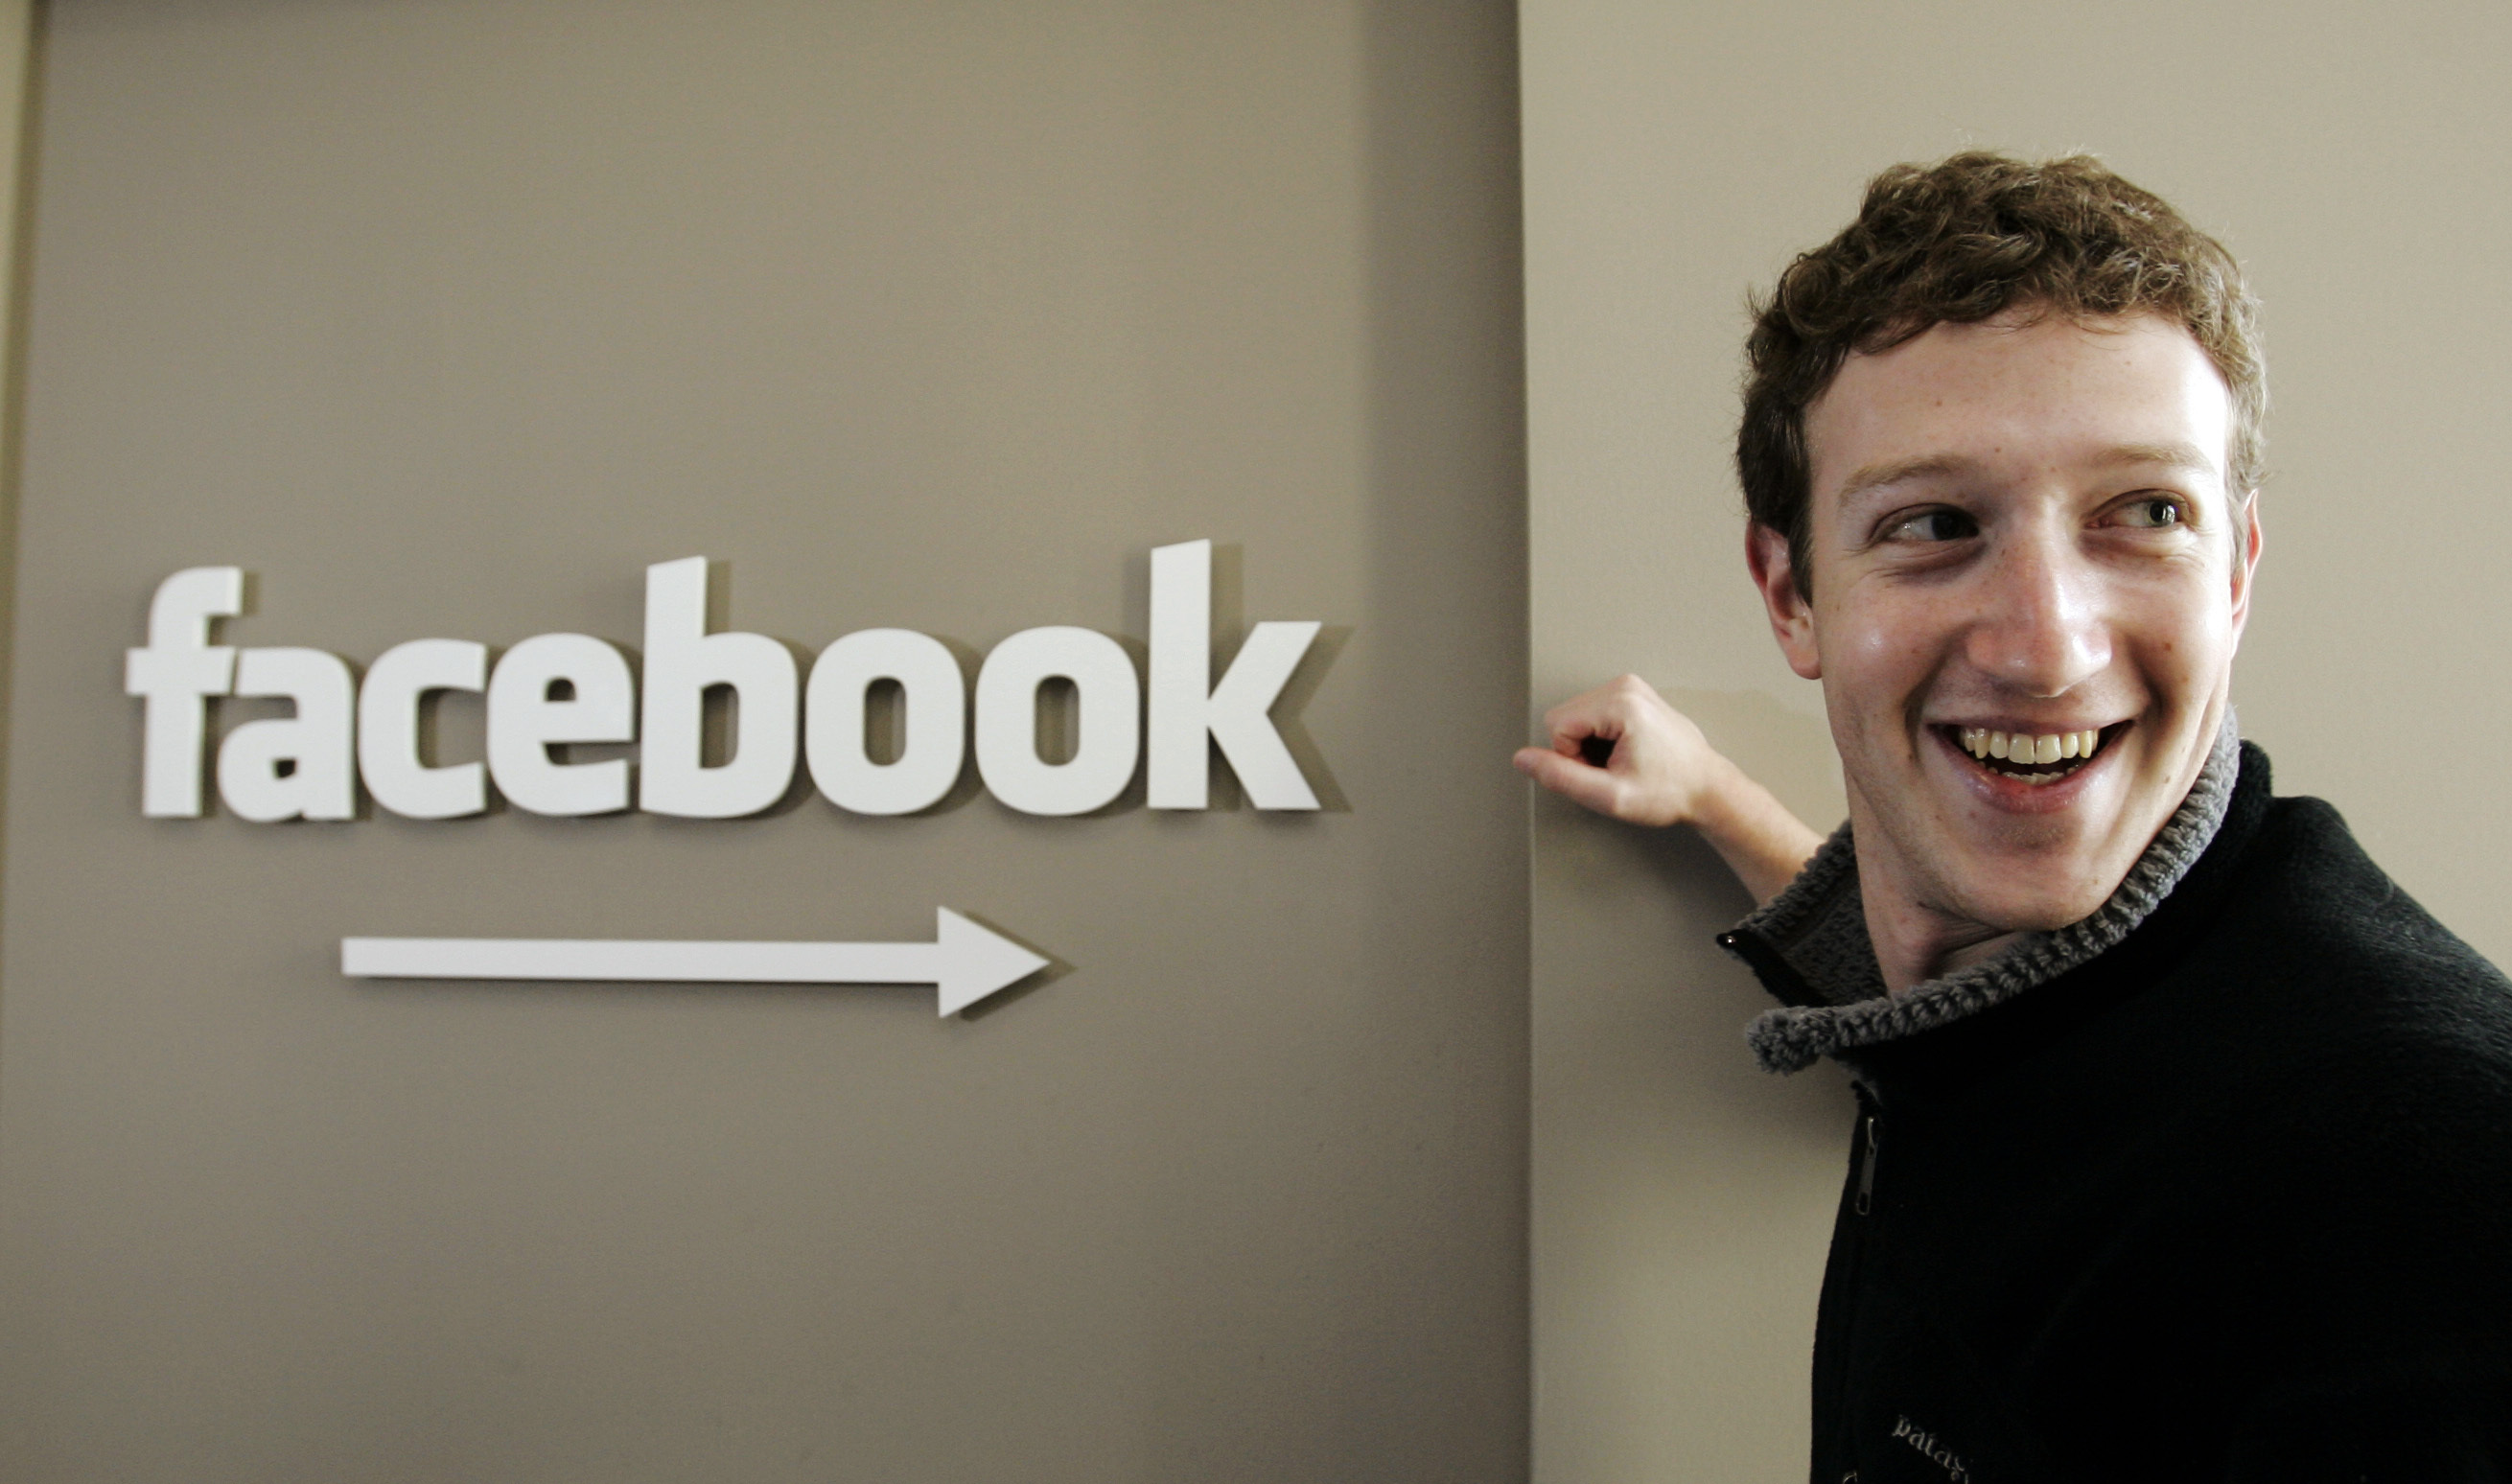 Mark Zuckerberg, photo for illustration purposes only.